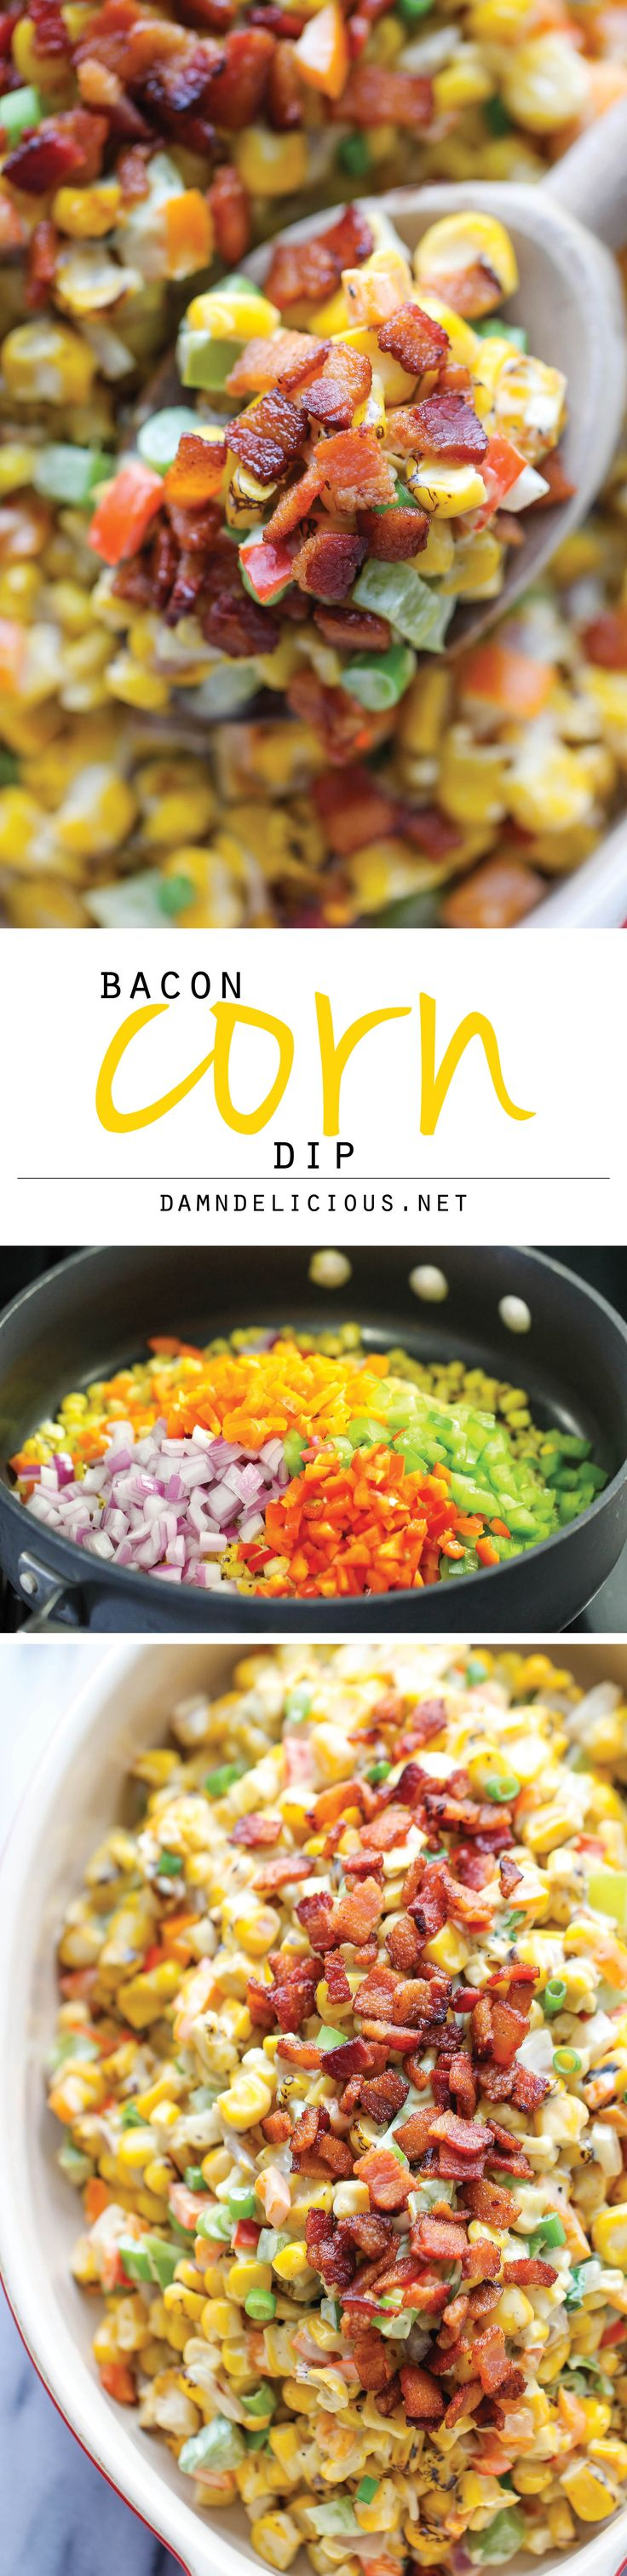 Bacon Corn Dip - This dip is unbelievably creamy and addicting. It's so good, you'll want to just skip the chips and eat this with a spoon!